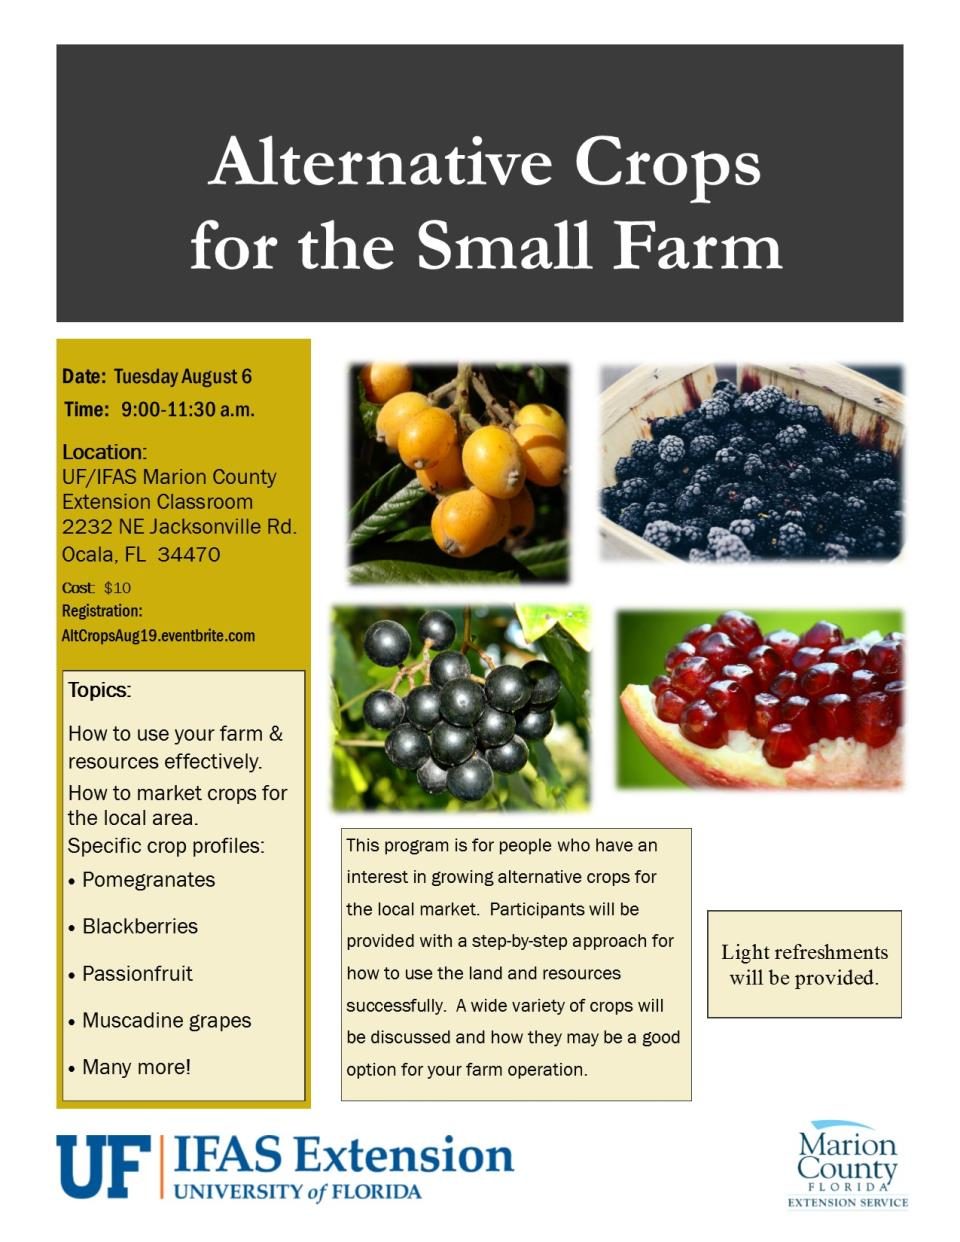 Alternative Crops for the Small Farm